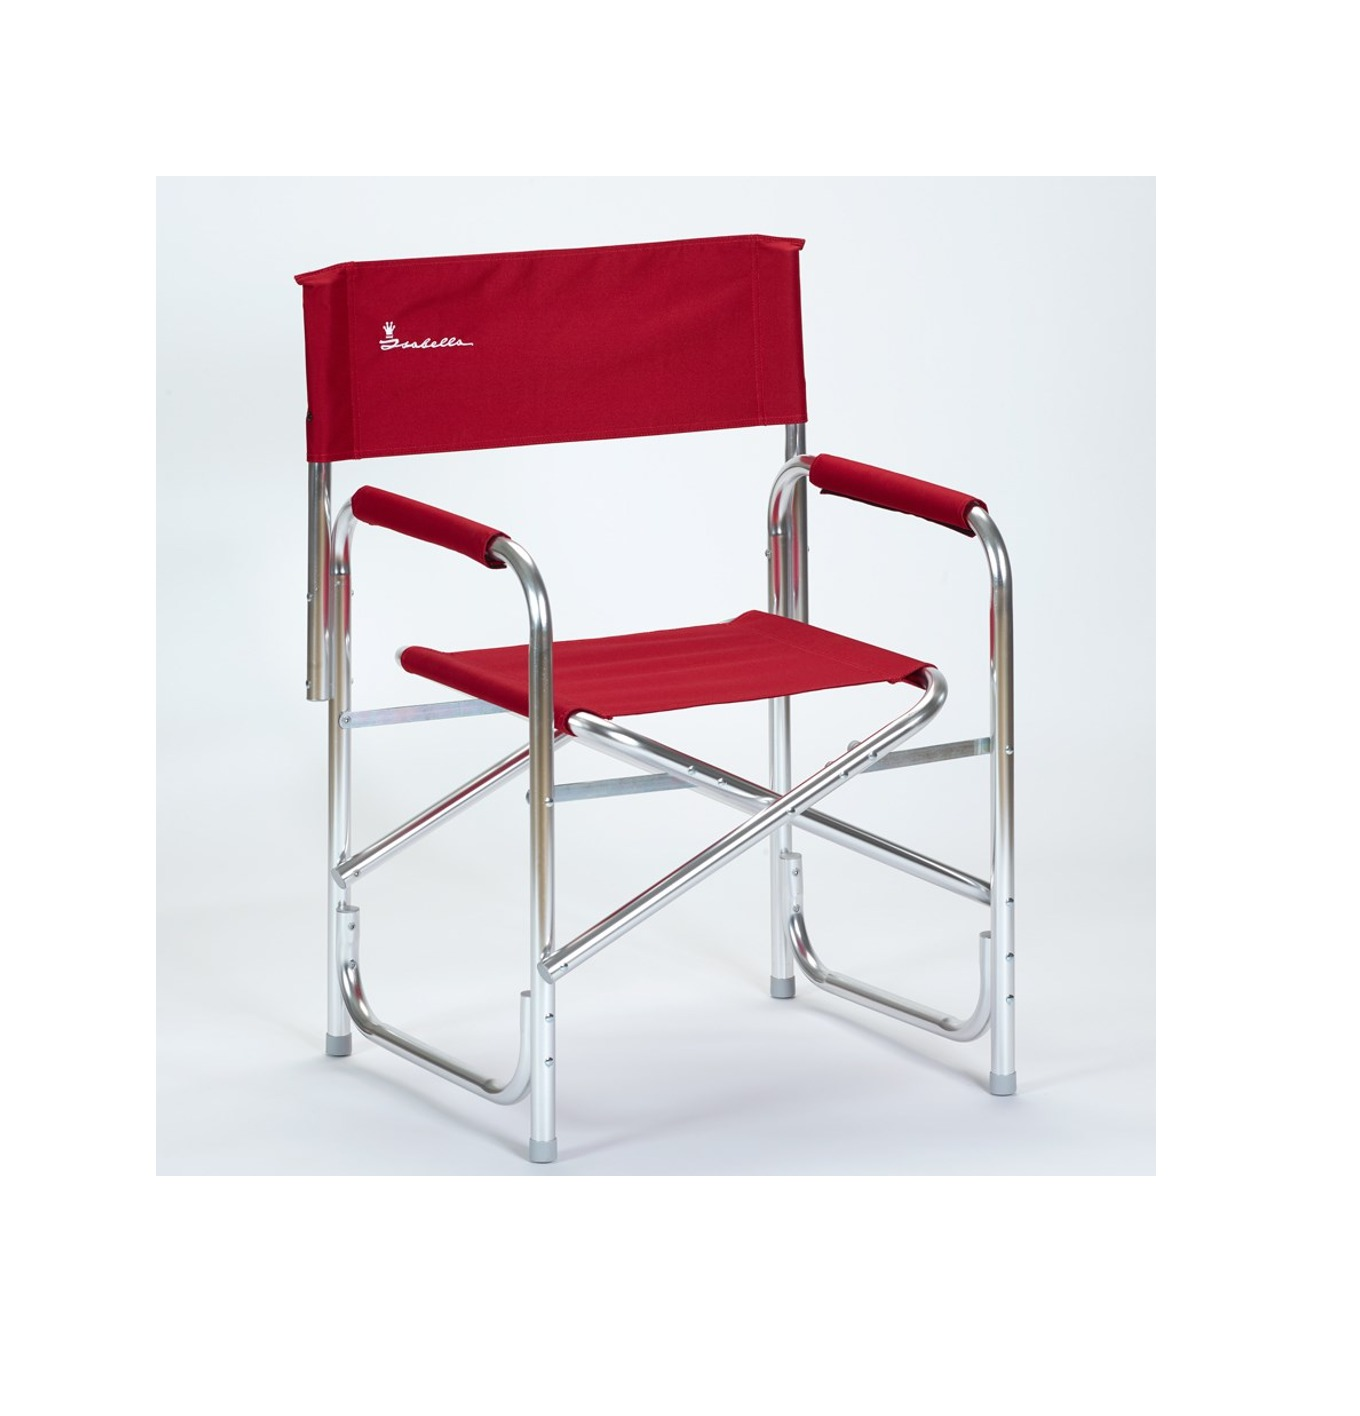 Isabella Directors Chair With Aluminium Frame Red P2577 4967 Zoom